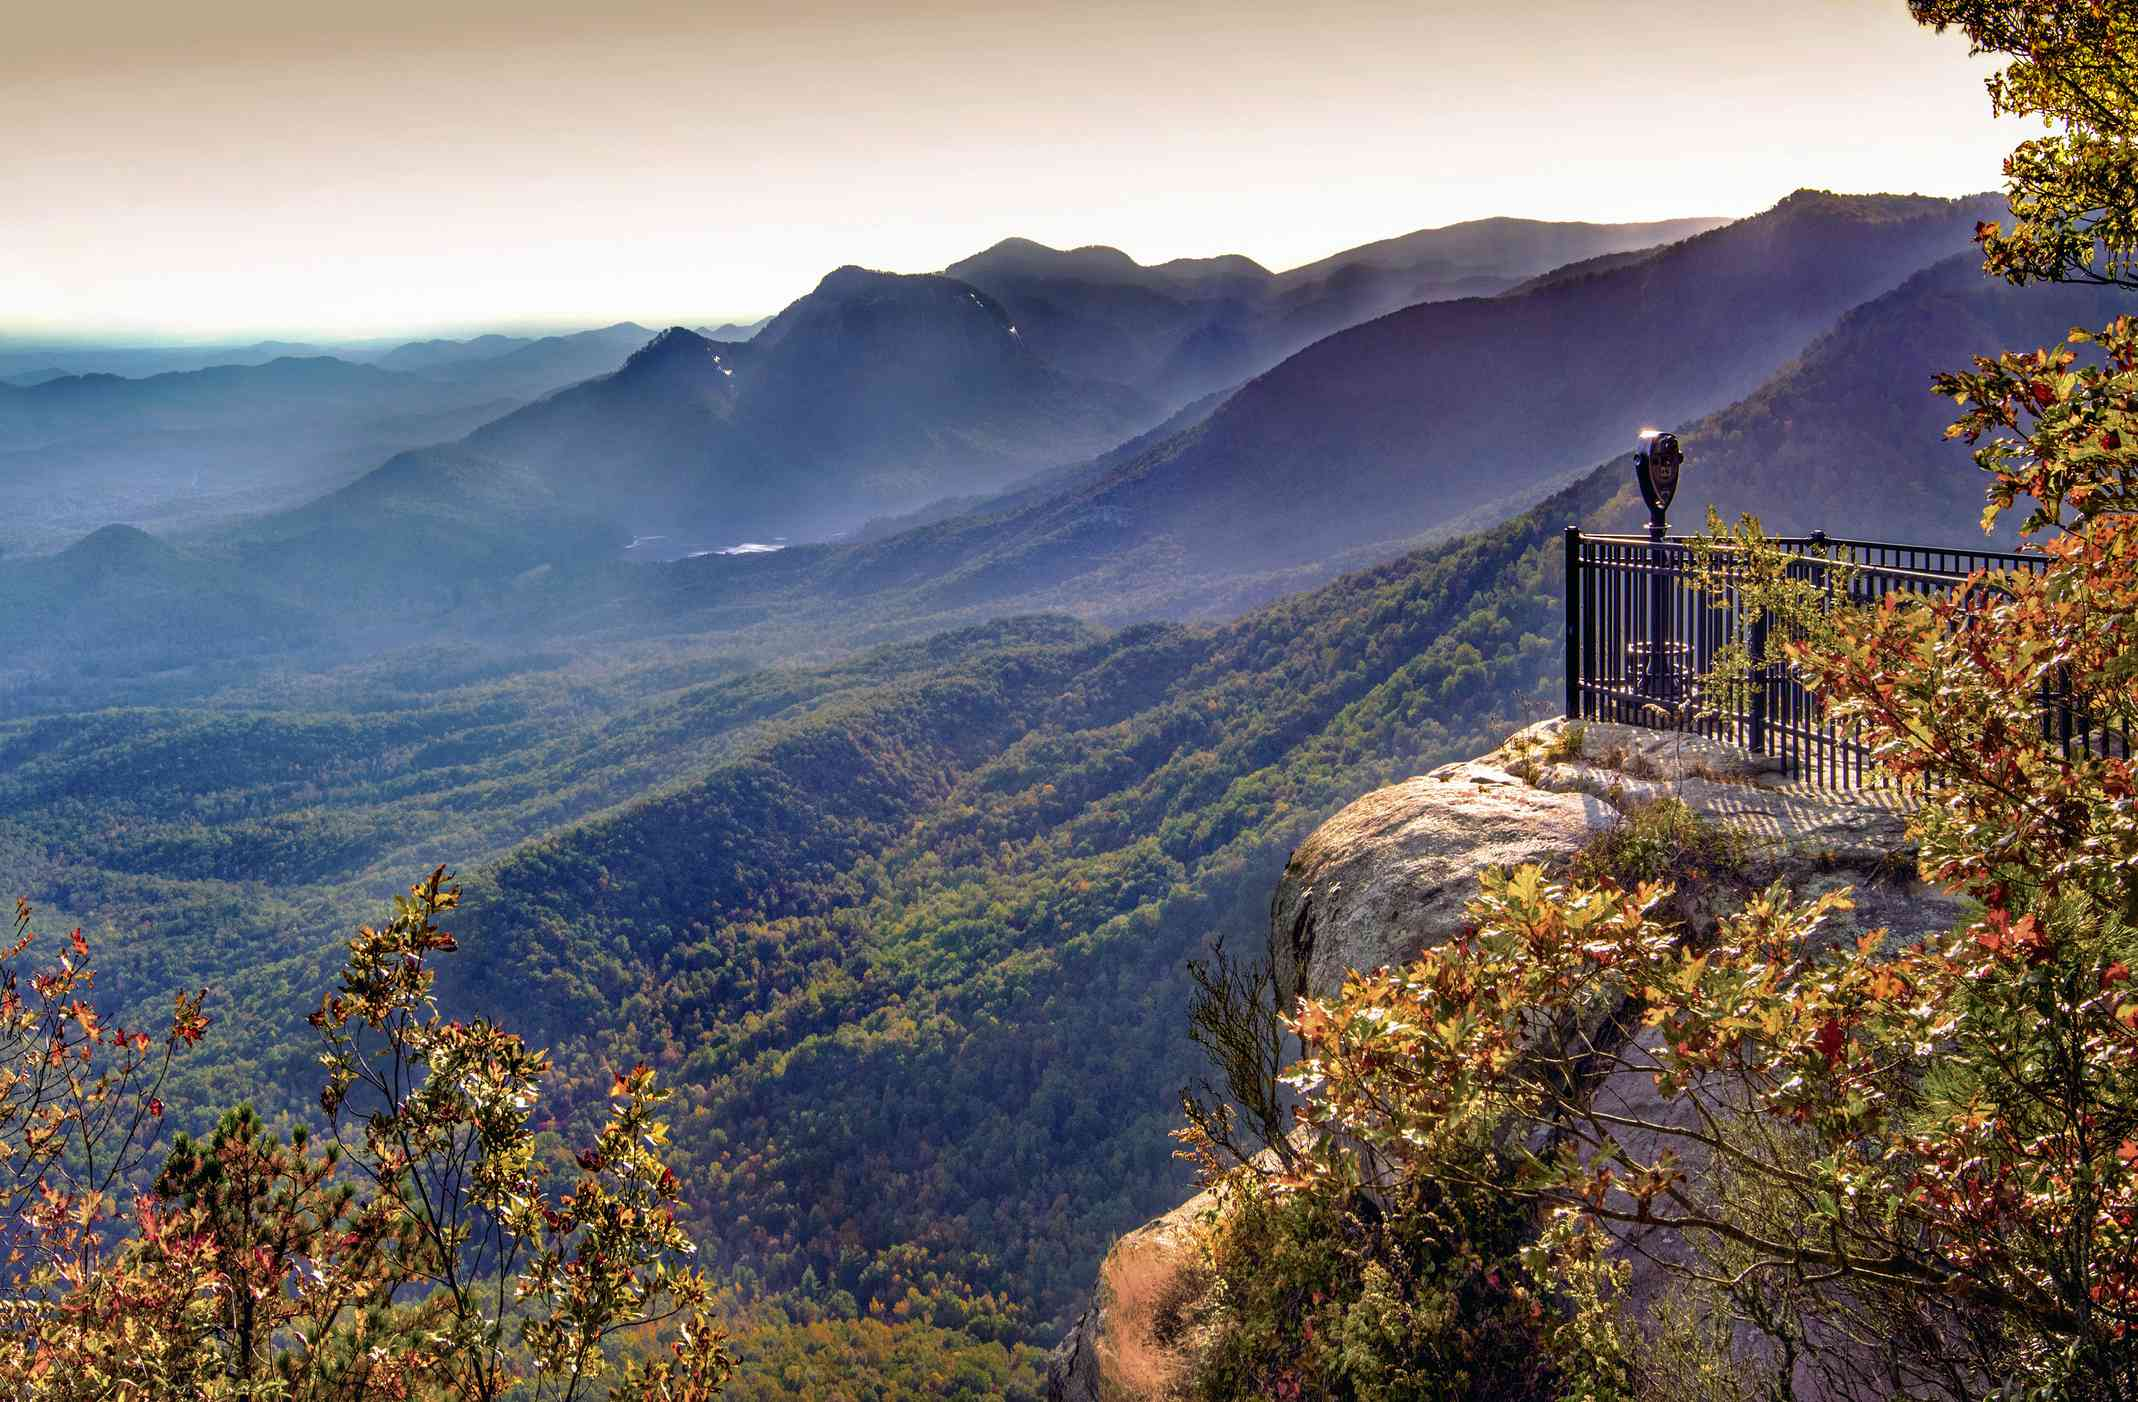 Sunset on Table Rock Mountain viewed from Caesars Head State Park in South Carolina